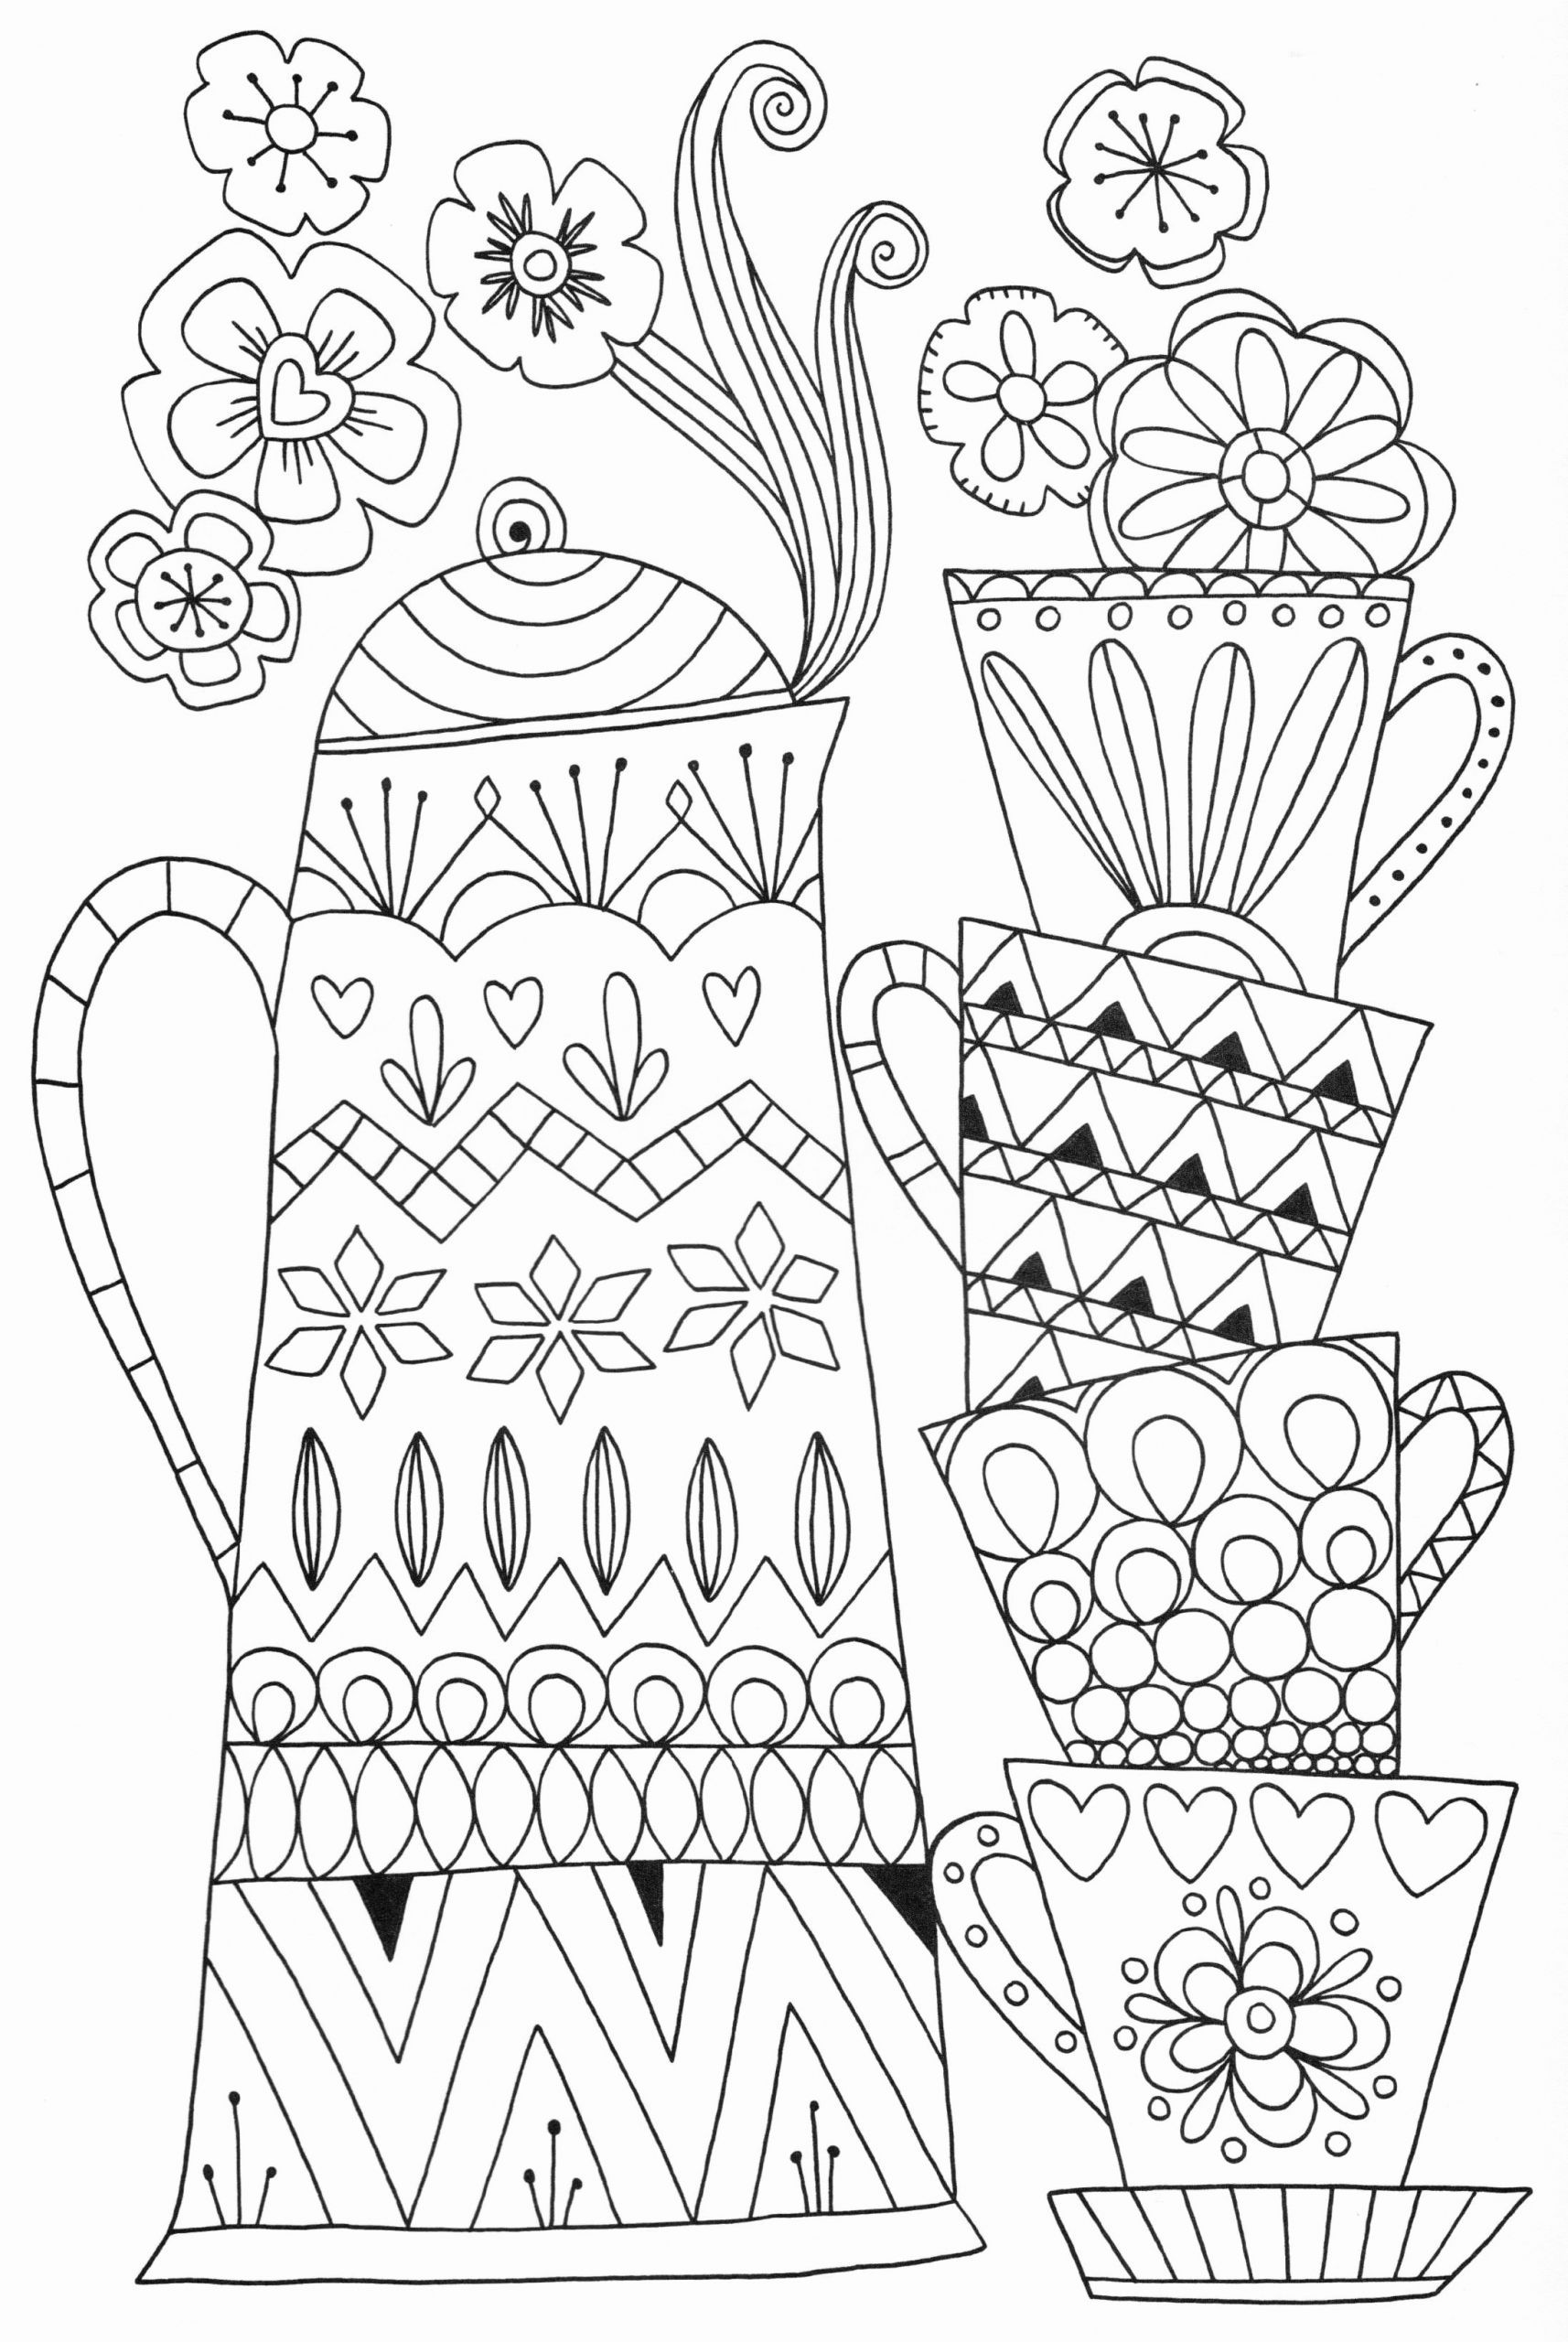 Mary Engelbreit Coloring Pages Christmas Lovely 22 Best Of Photos Of King Crown Coloring Page Crafted Here In 2020 Coloring Pages Mary Engelbreit Free Coloring Pages